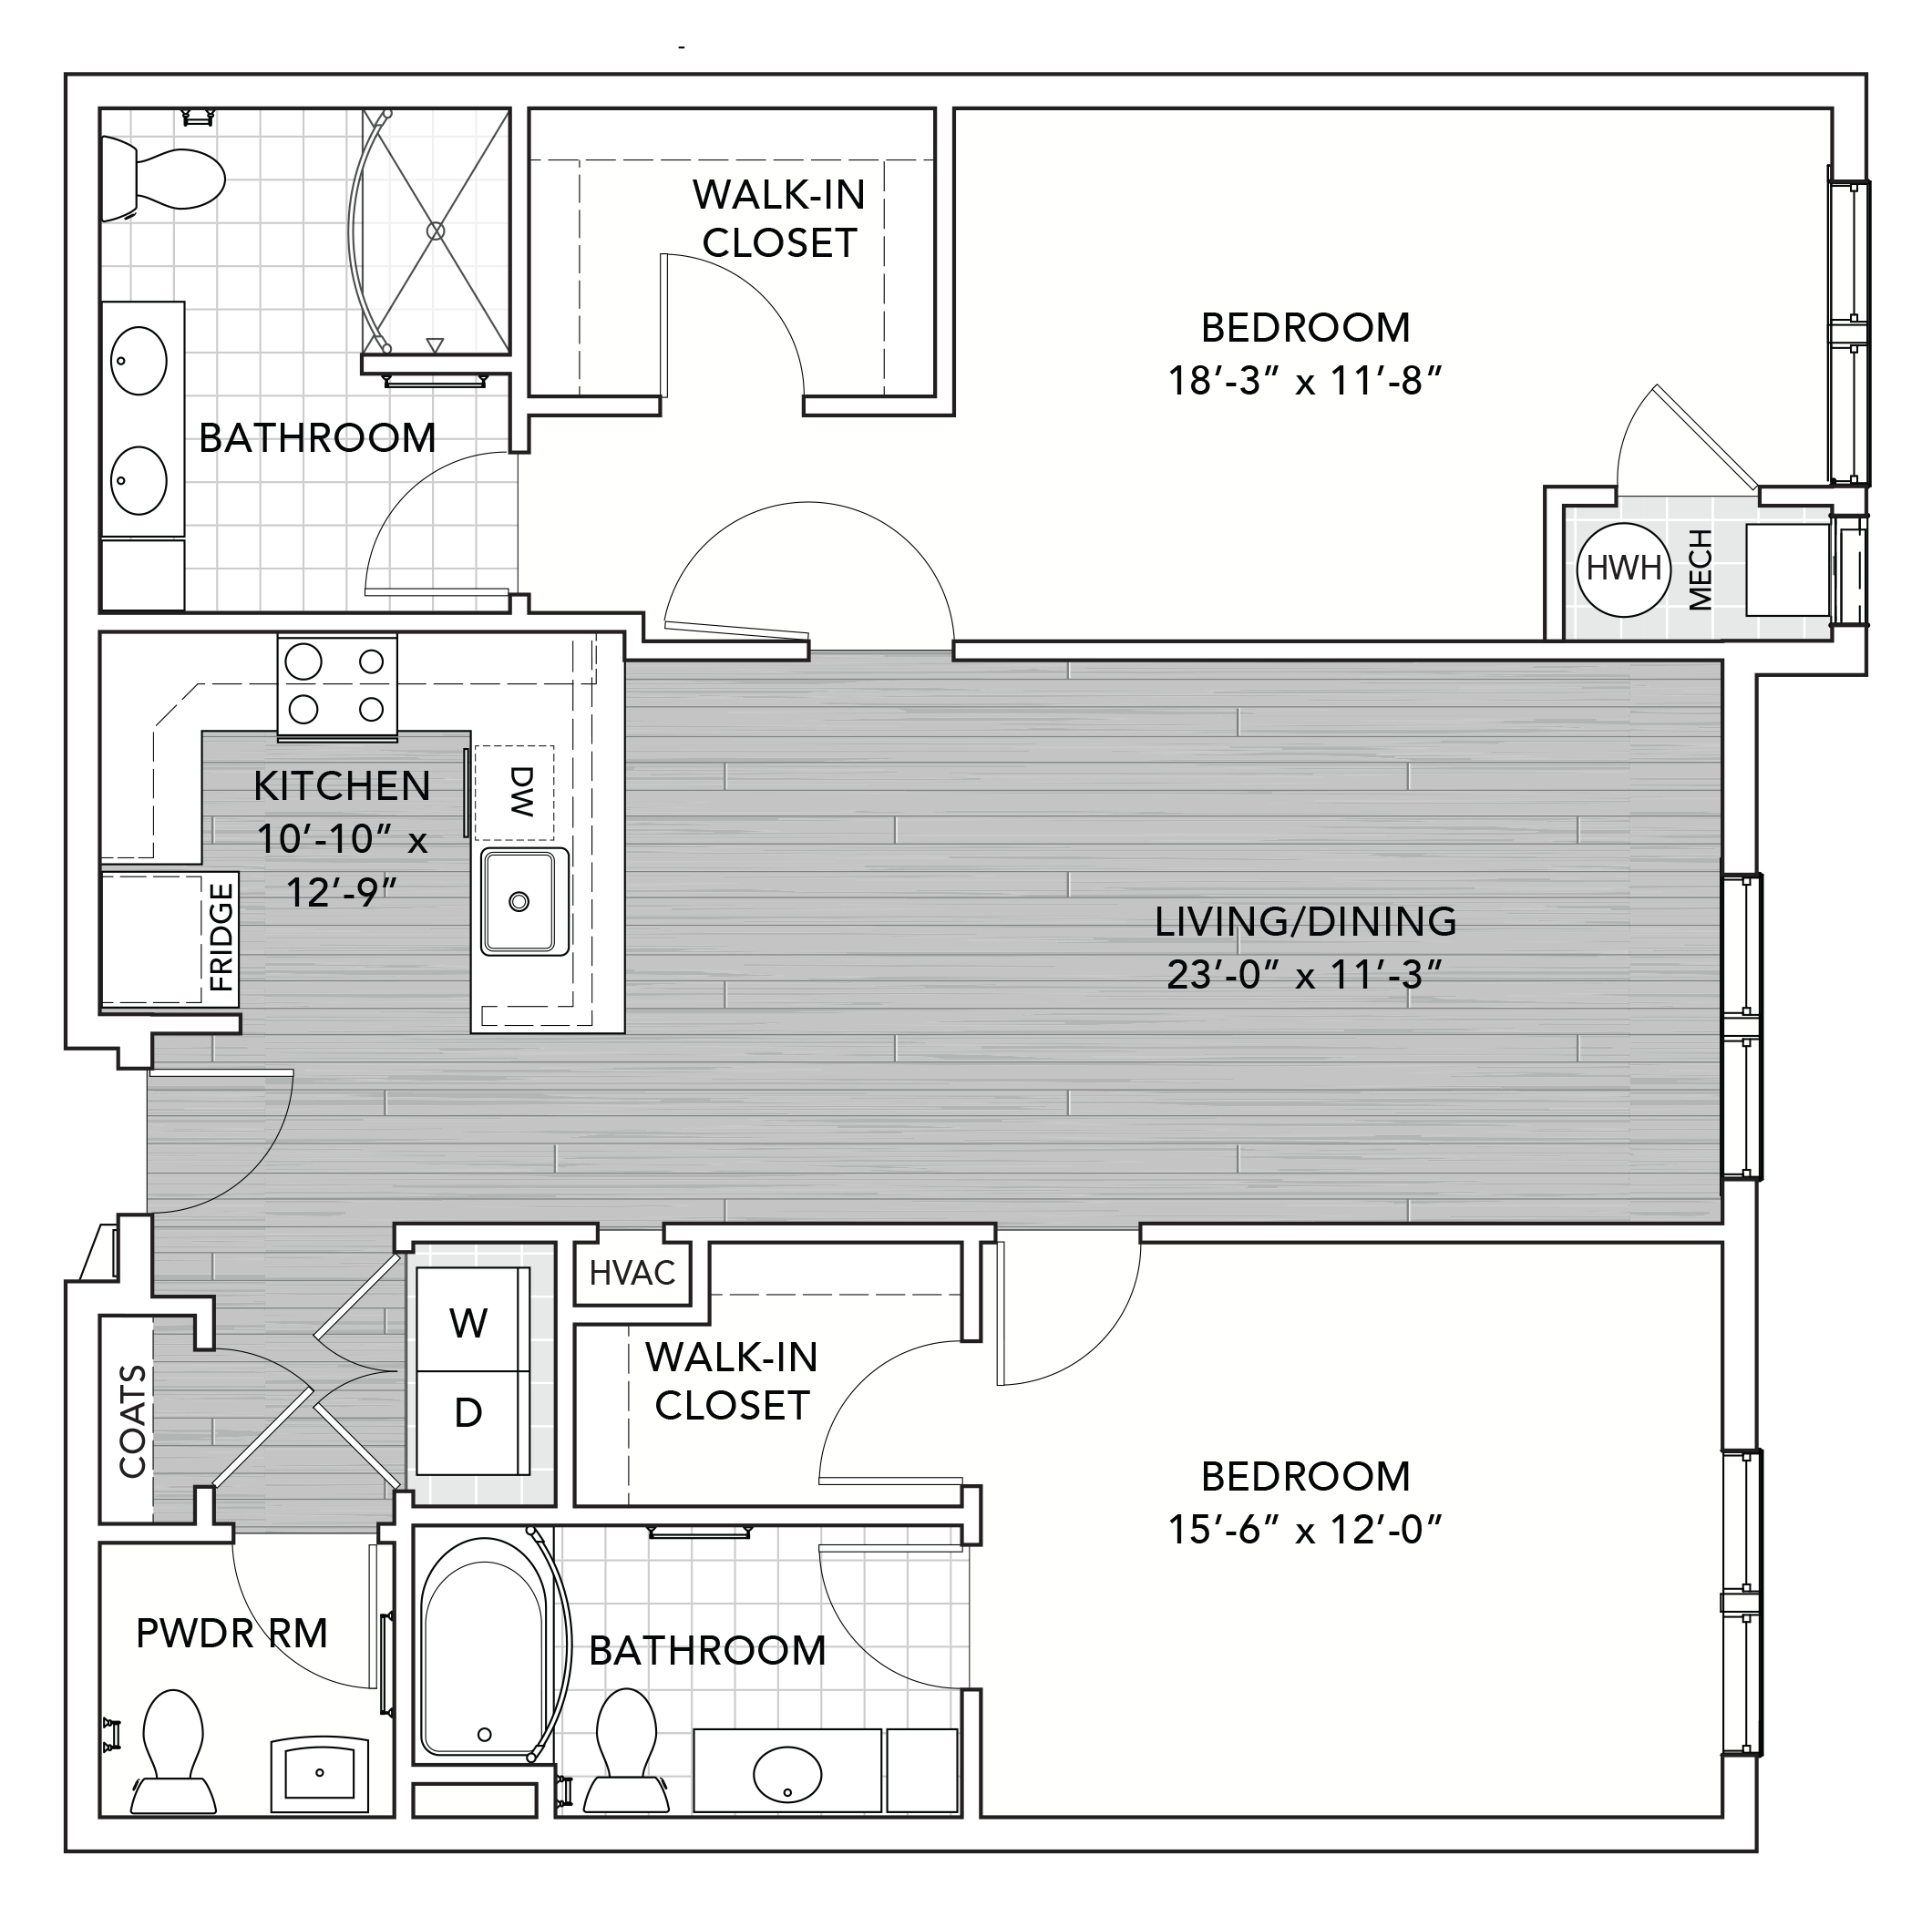 P0655013 parksquare b12 1295 2 floorplan